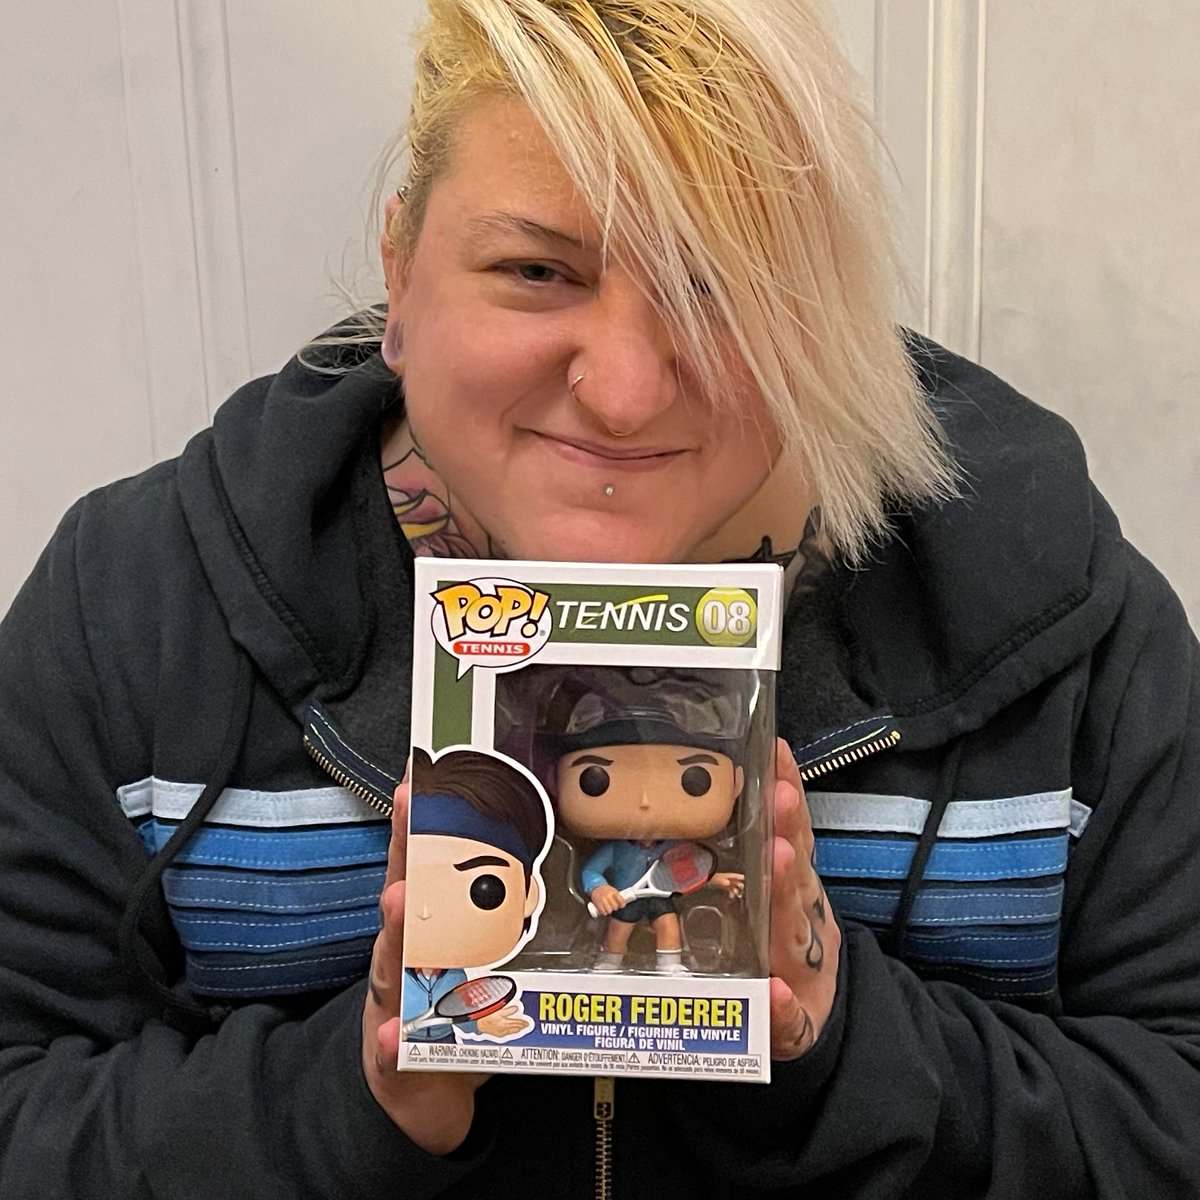 .@rogerfederer I got my Roger Funko POP today! I'm so excited! I've only been waiting for this since forever! WHOOOOOOOP! #rogerfederer #FunkoPops #tennis  @ChrissieEvert @ChrisMcKendry have you got yours yet?! 😁😁